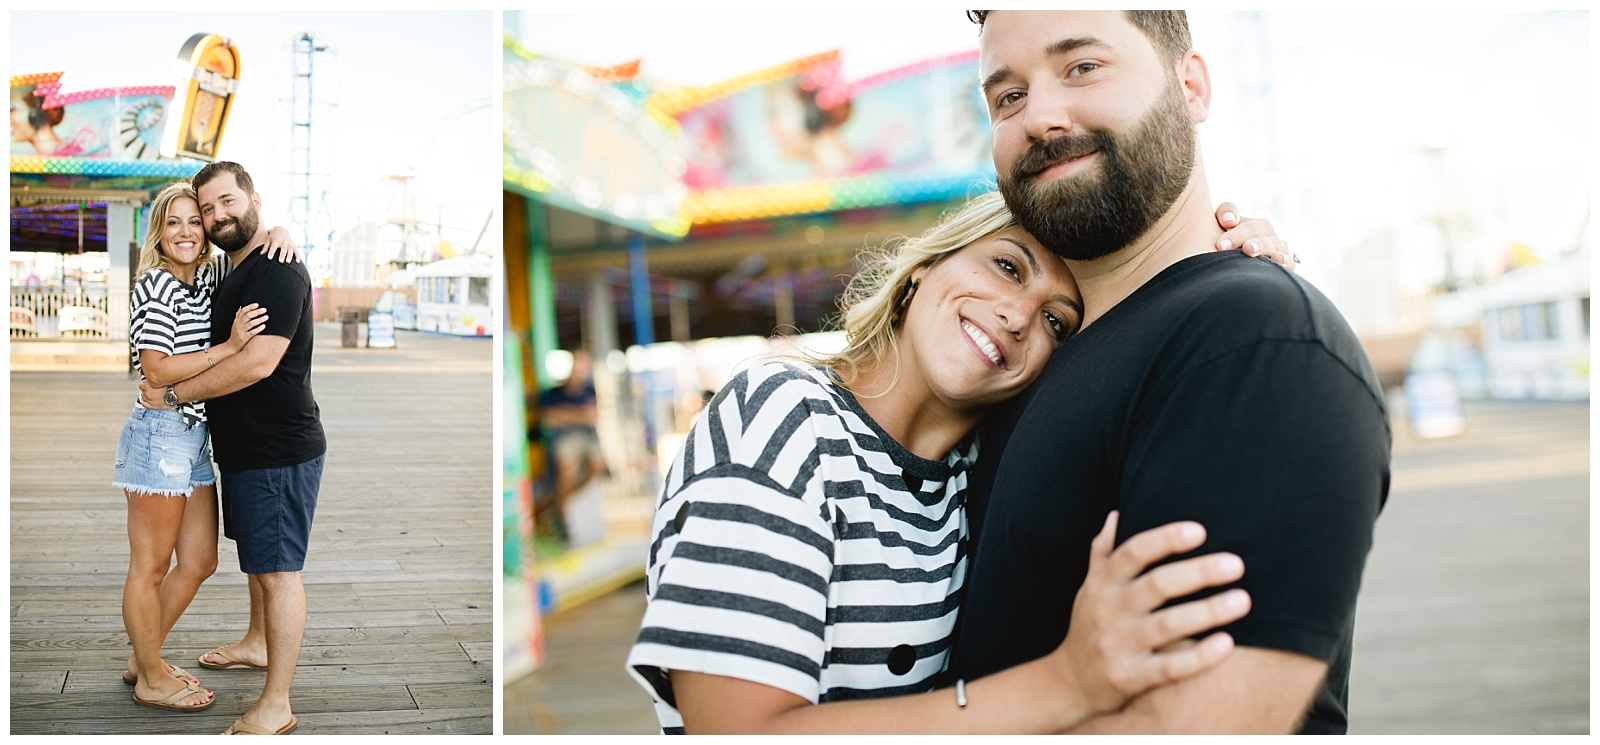 seaside engagement photography seaside engagement photos seaside boardwalk seaside engagement pics